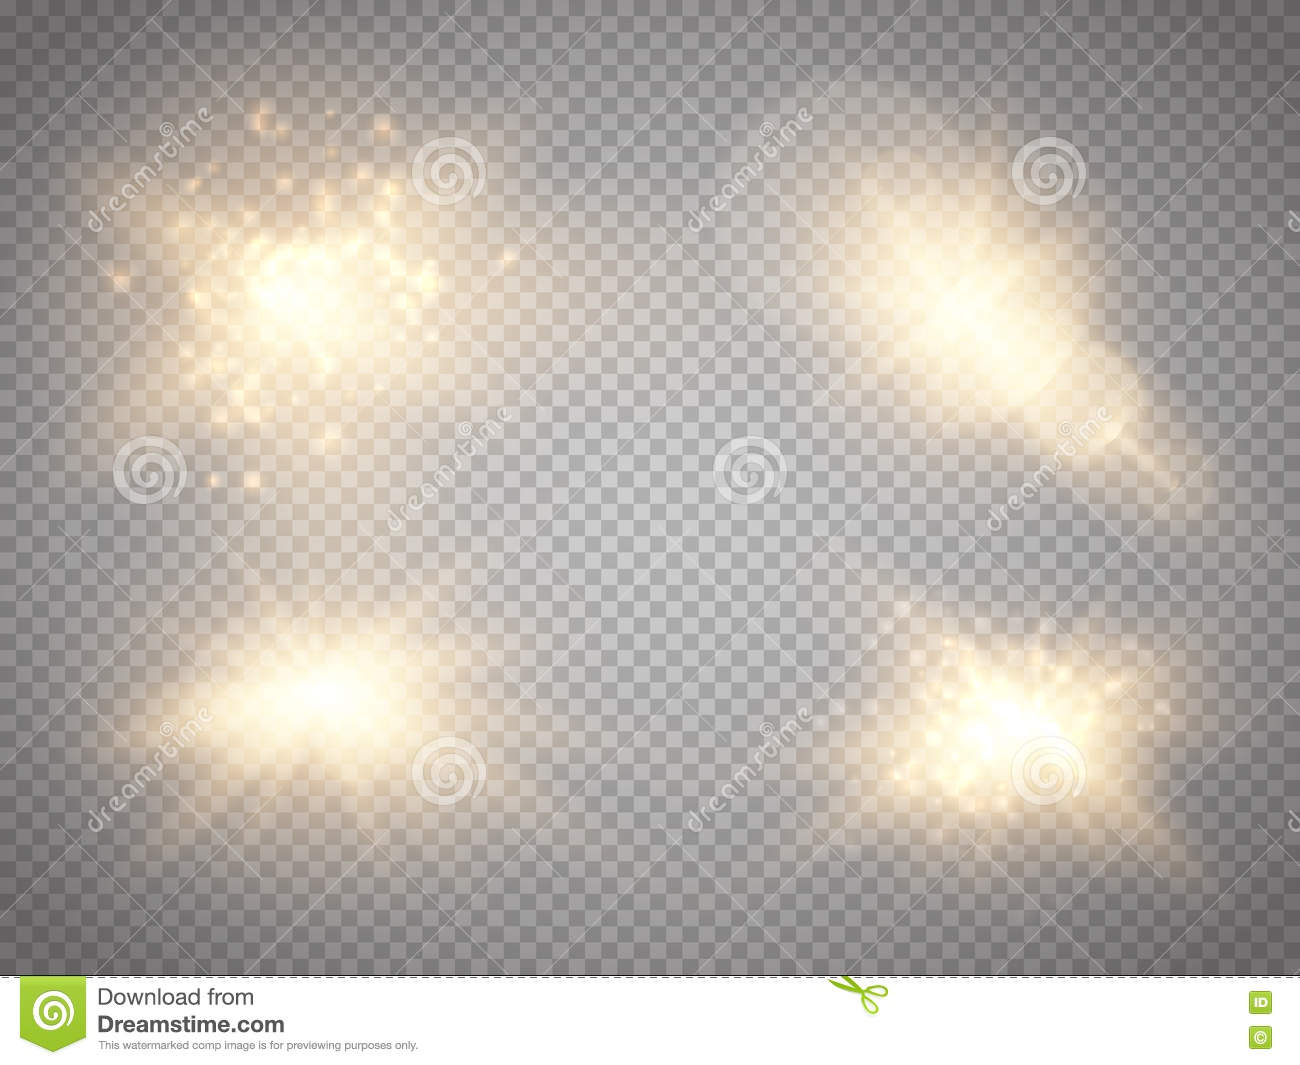 Gold glitter bright vector transparent background golden sparkles - Set Of Golden Glowing Lights Effects Isolated On Transparent Background Glow Light Effect Star